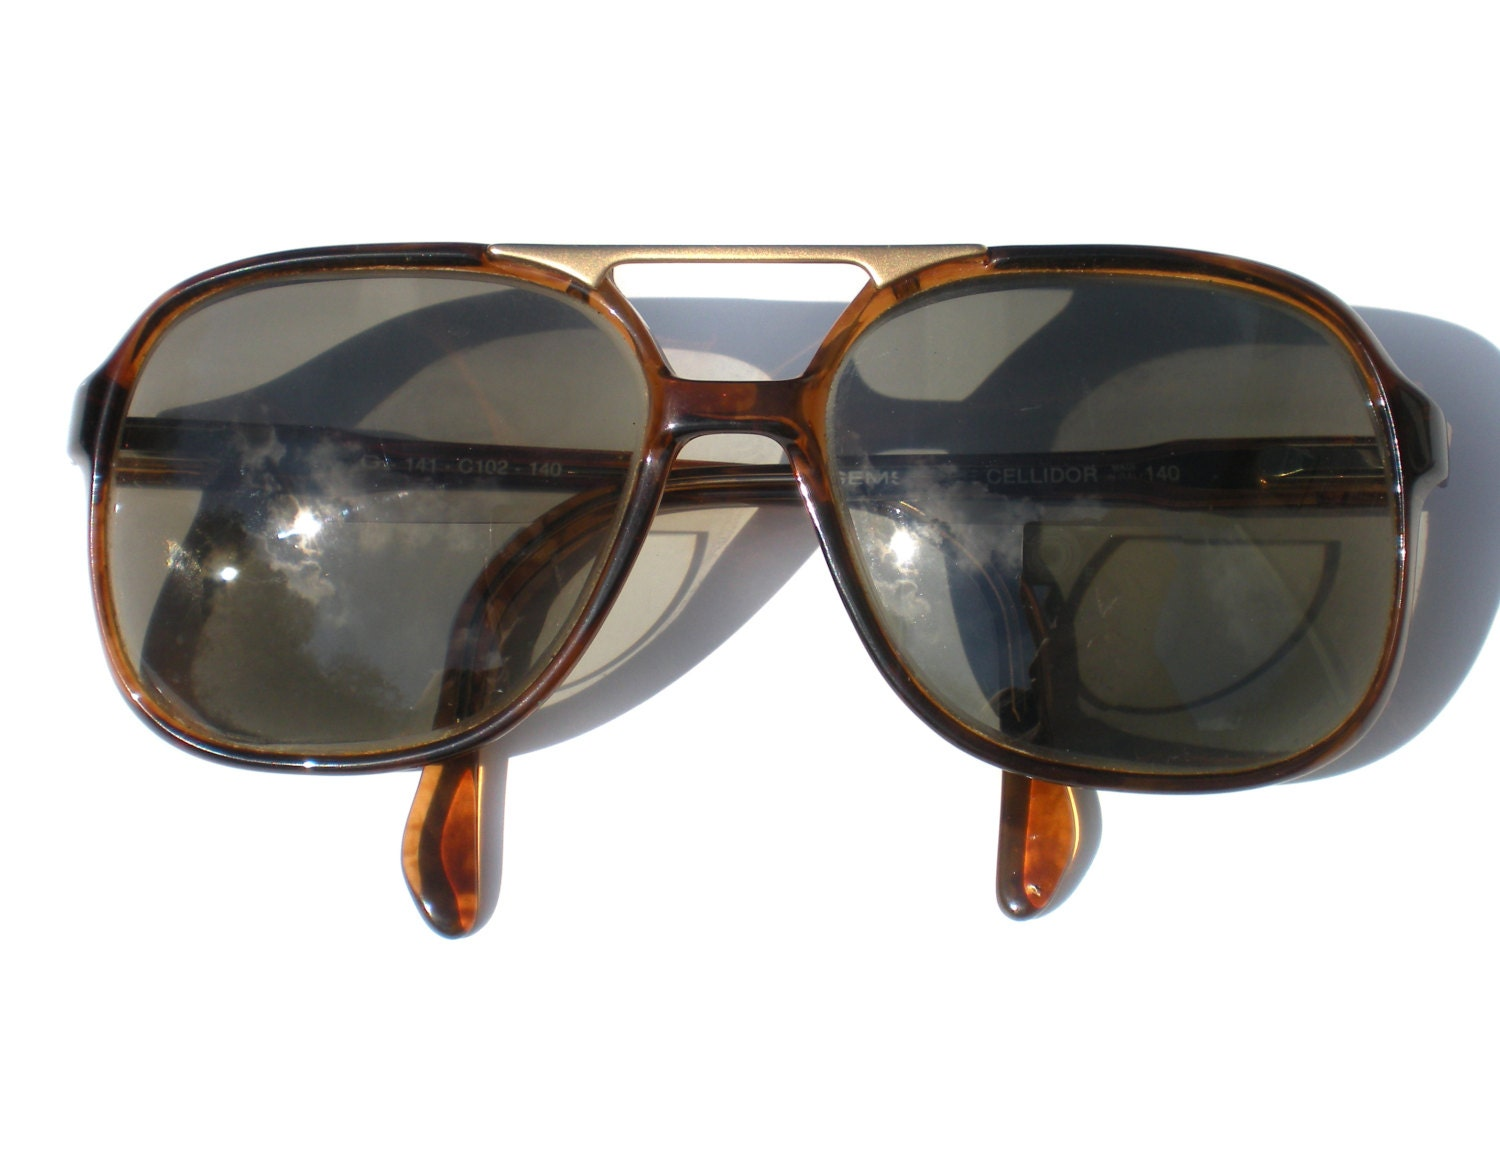 Big Gold Frame Sunglasses : Mens 80s Glasses or Sunglasses Brown Frames Large with Gold